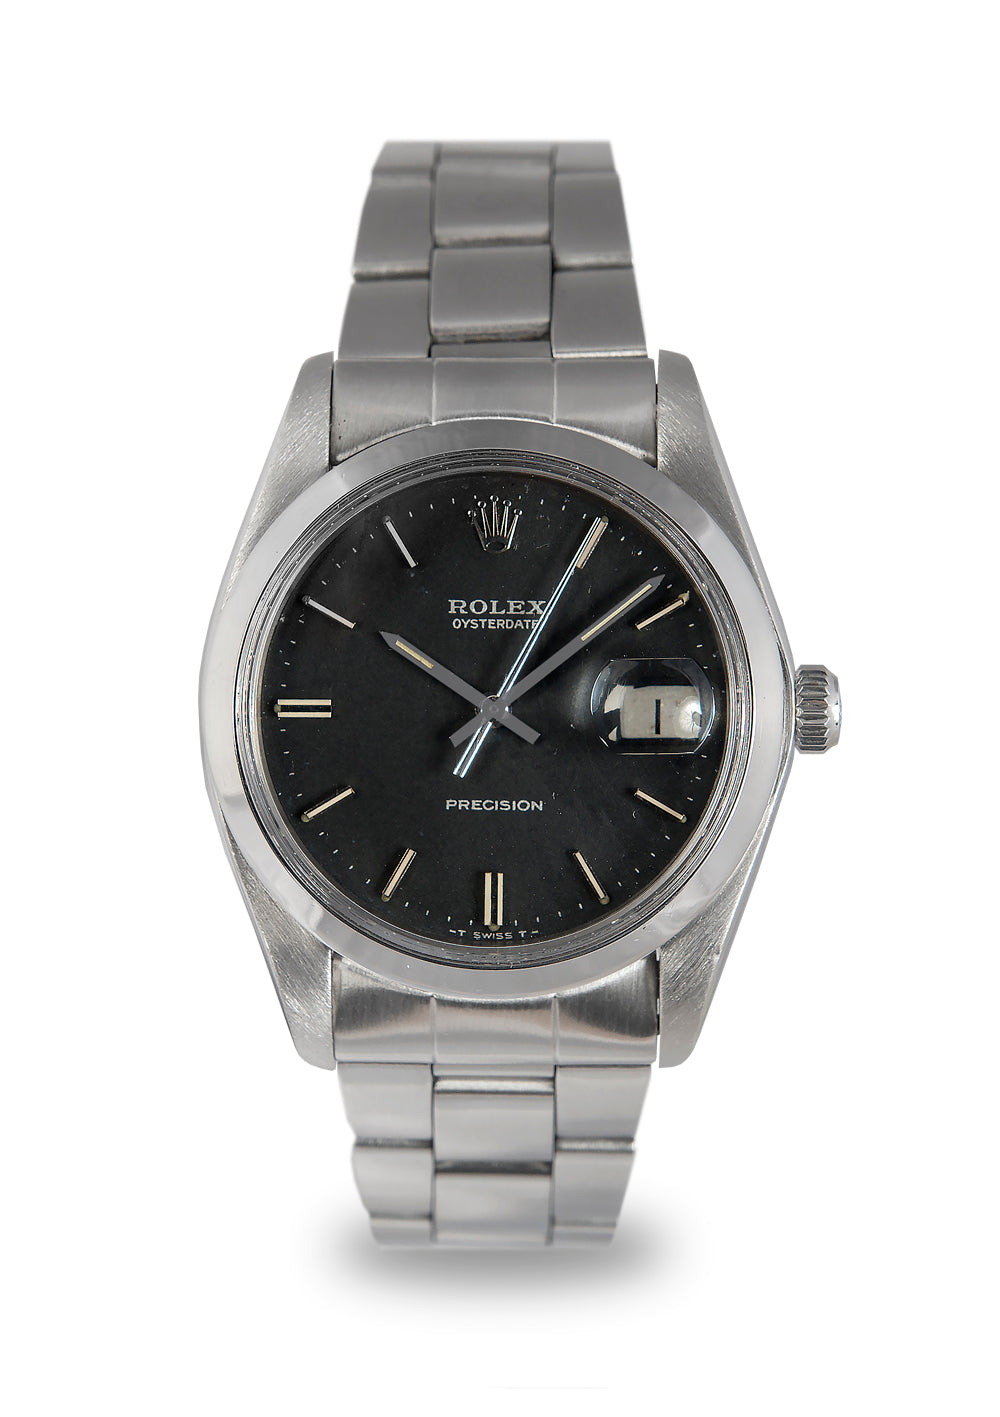 Rolex Oysterdate Steel Watch with Black Dial 6694